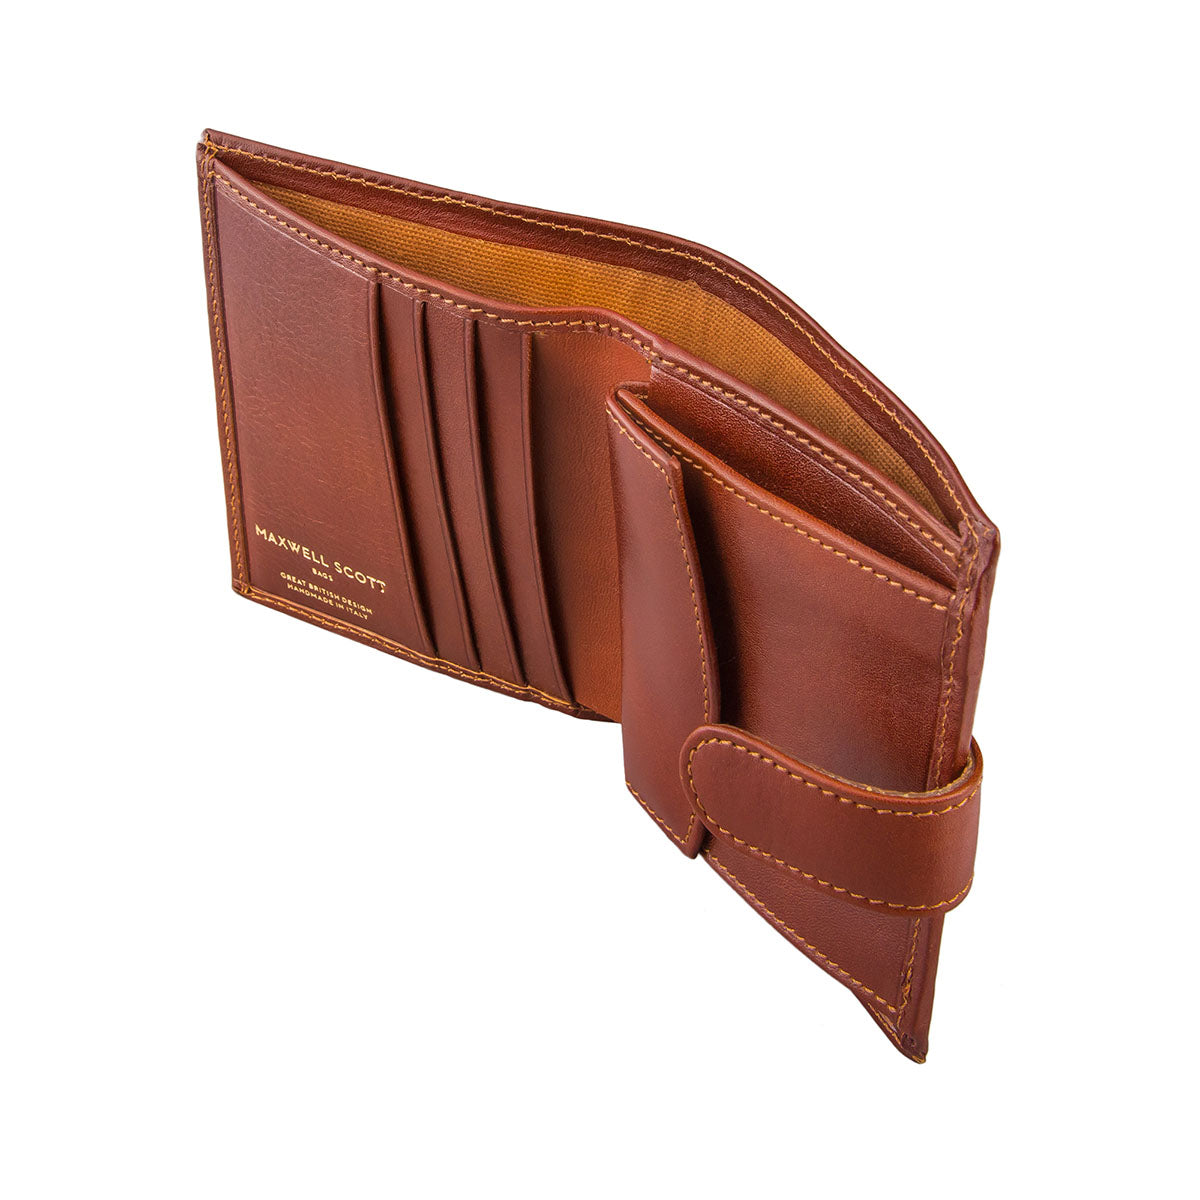 Image 3 of the 'Pietre' Chestnut Veg-Tanned Leather Compact Wallet